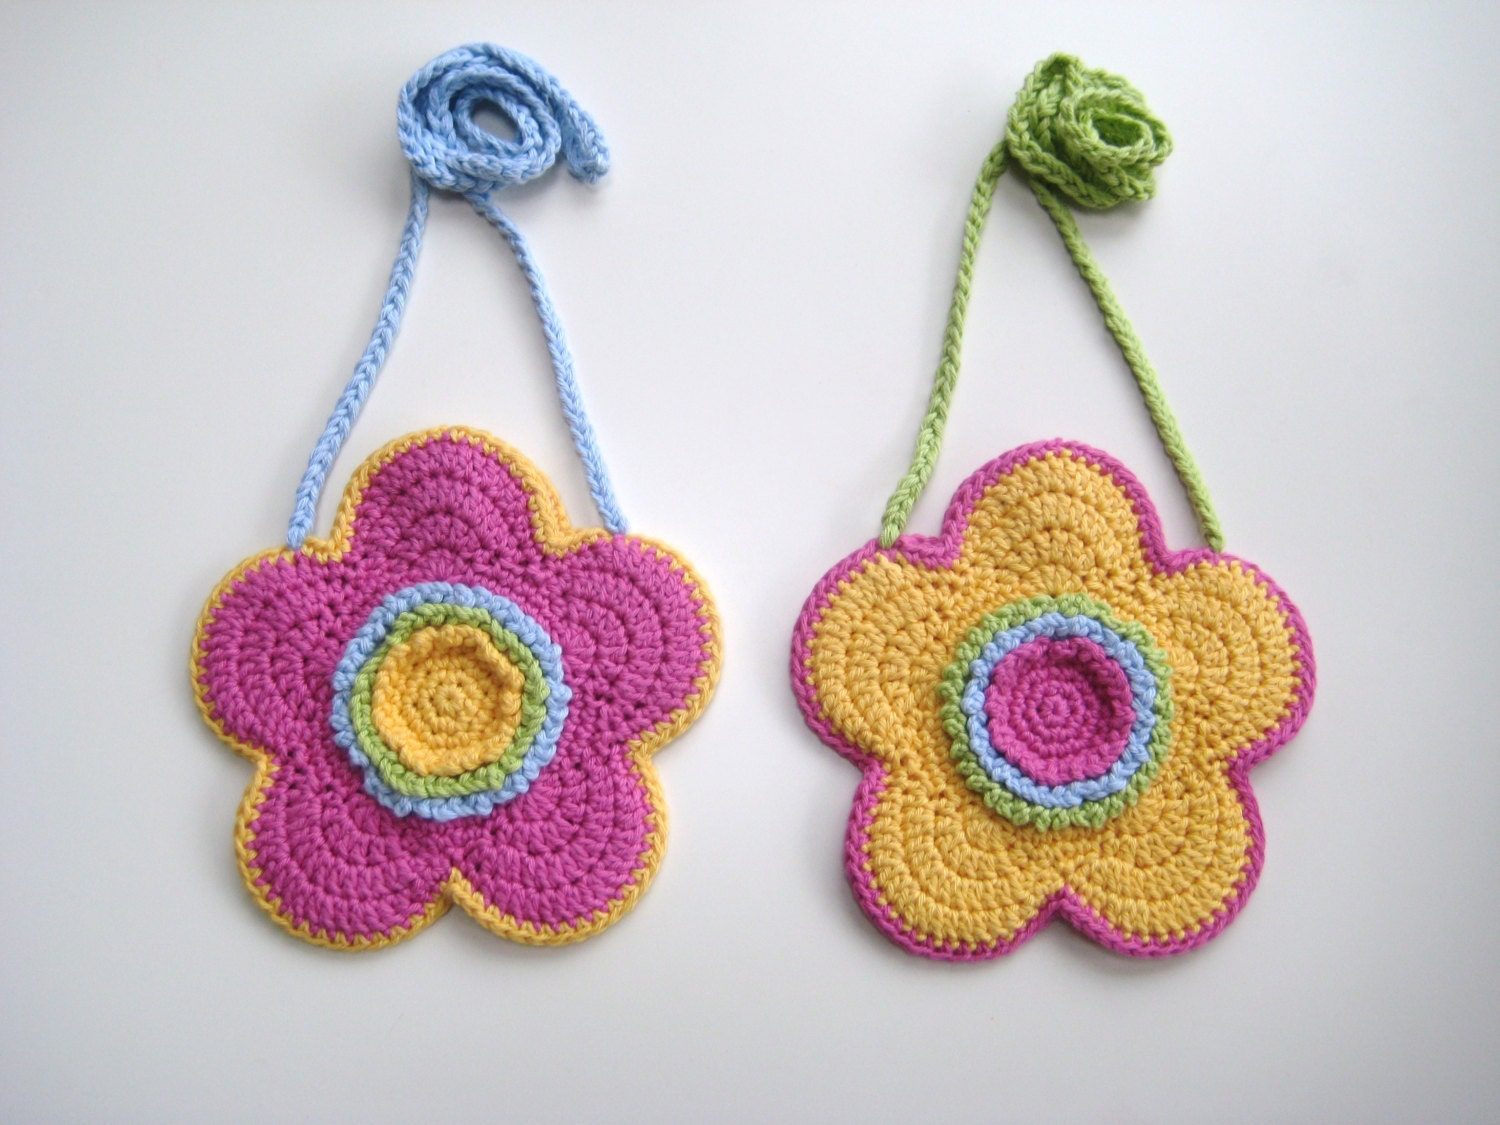 Flower Crochet Bag : Crochet Pattern Flower shaped purse bag by avondalepatterns